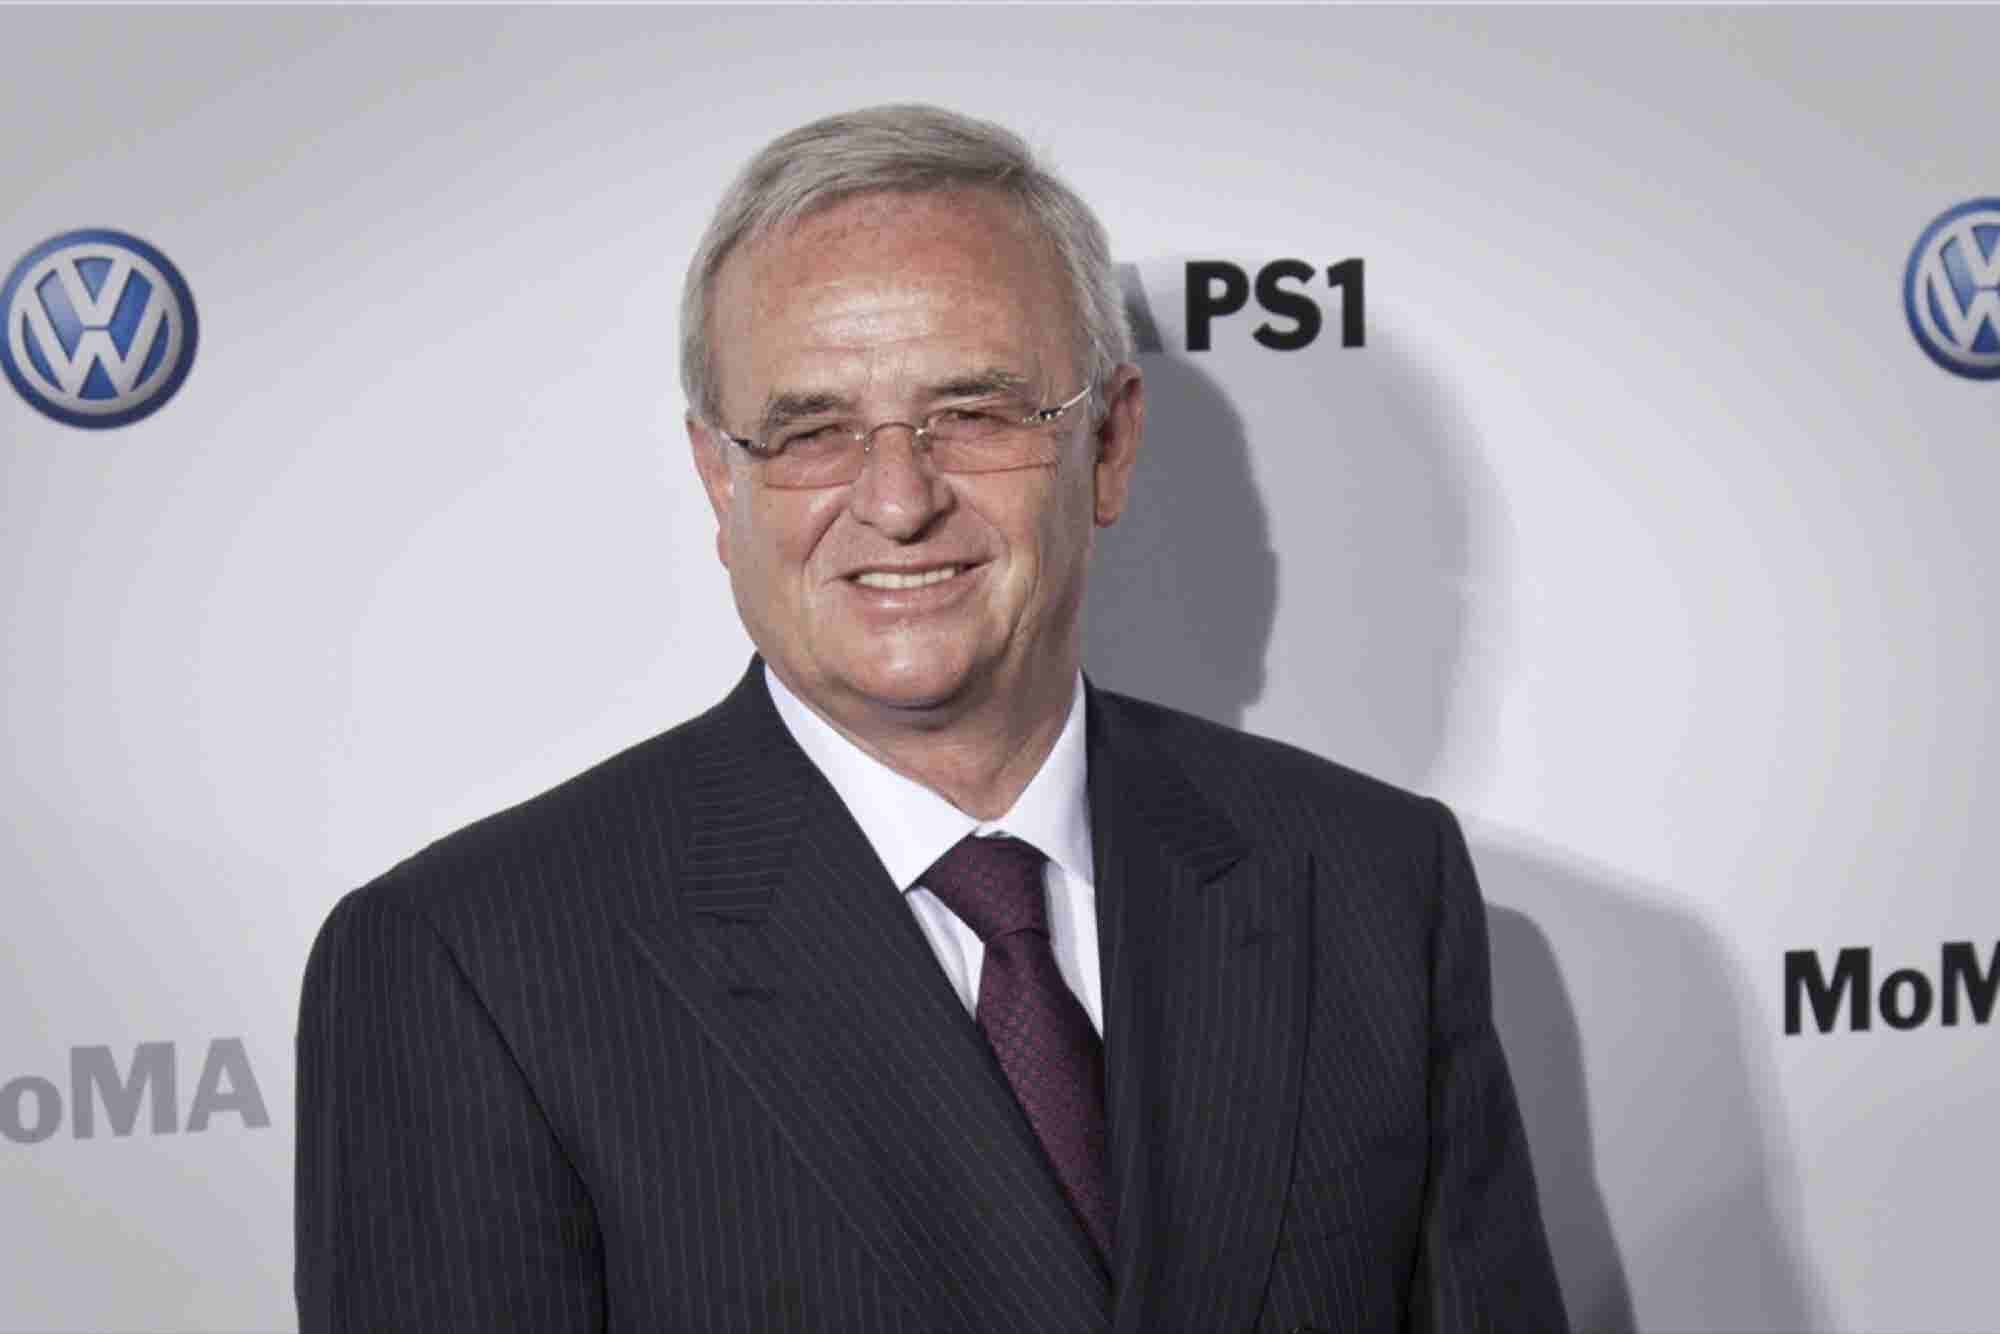 What We Can Learn From Volkswagen's Scandal and the Legacy of a Leader